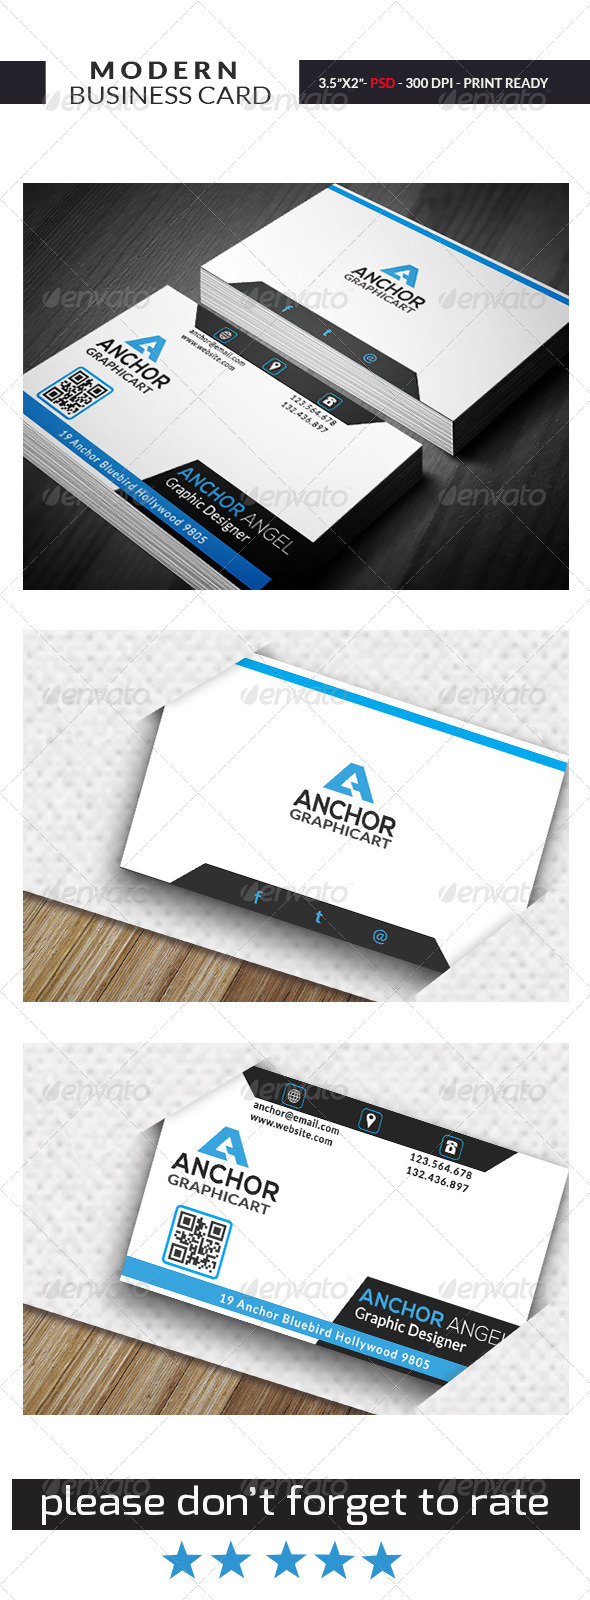 GraphicRiver Modern Business Card 07 7308750